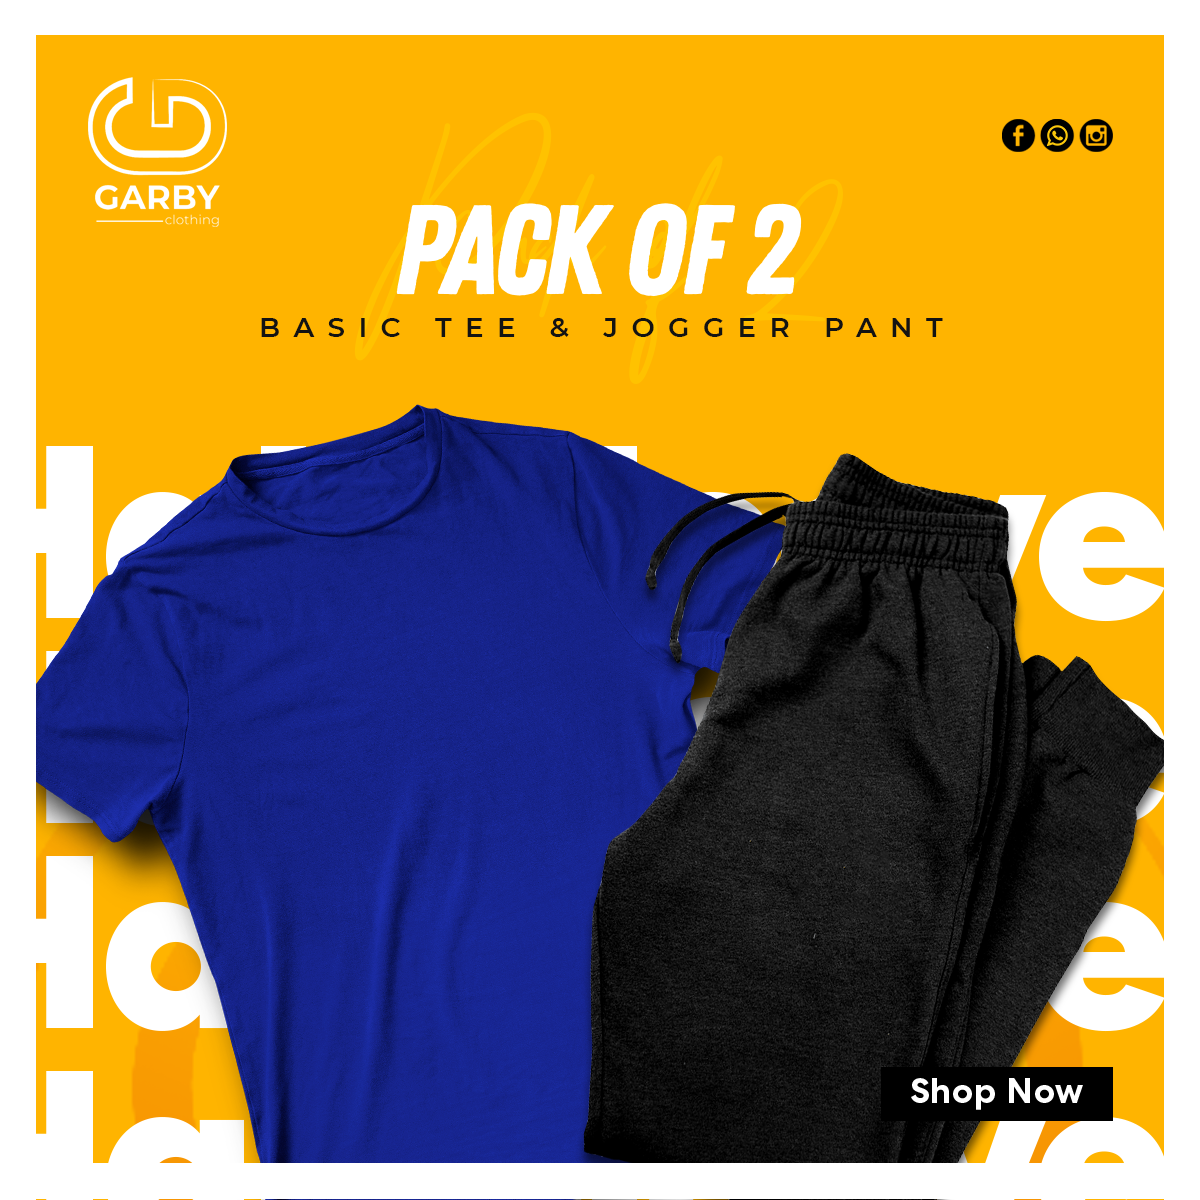 Pack of the 2 tees